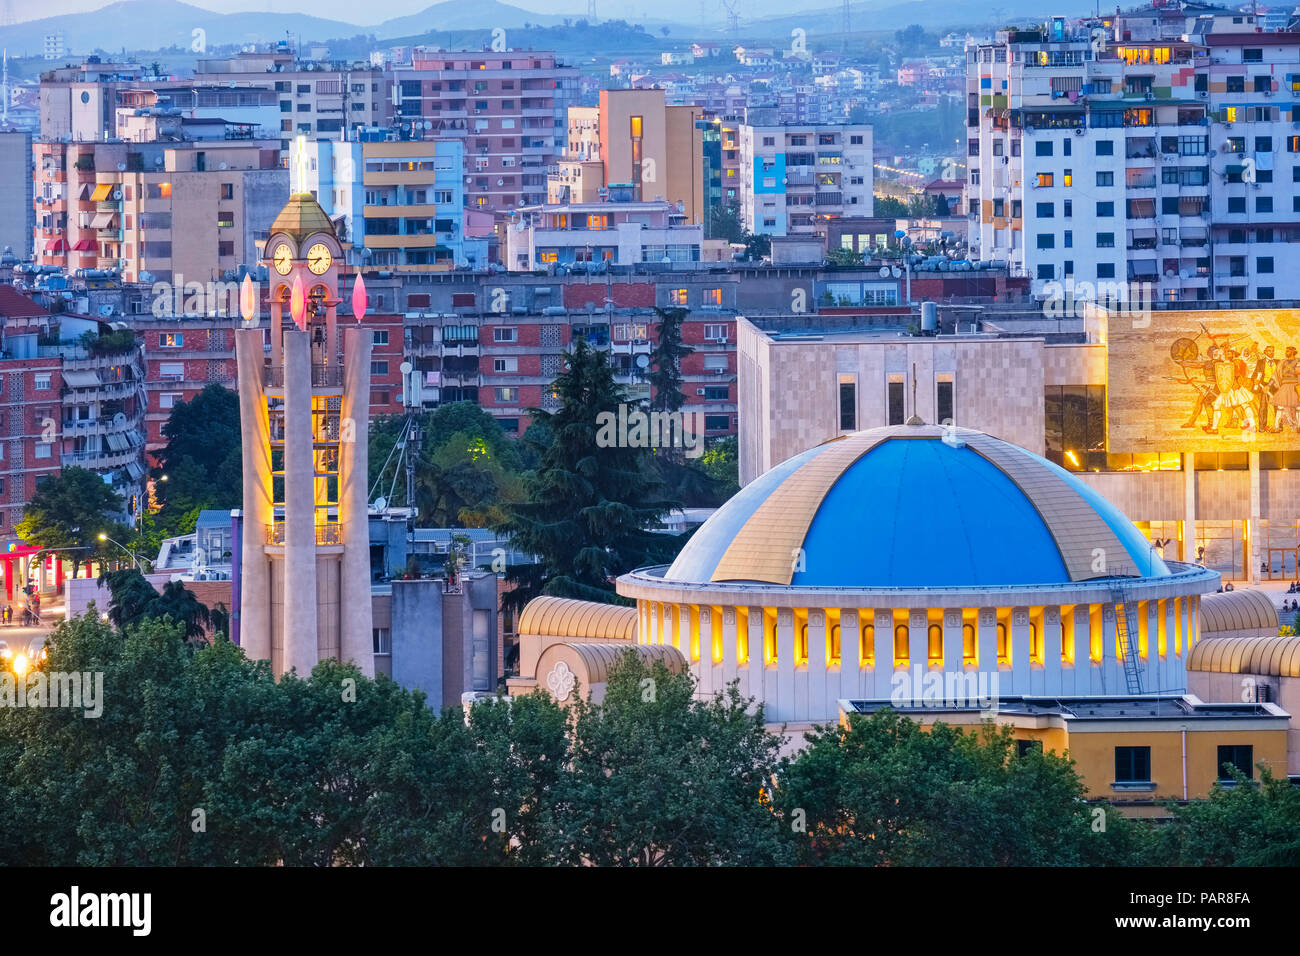 Albania, Tirana, resurrection cathedral, albanian orthodox church - Stock Image